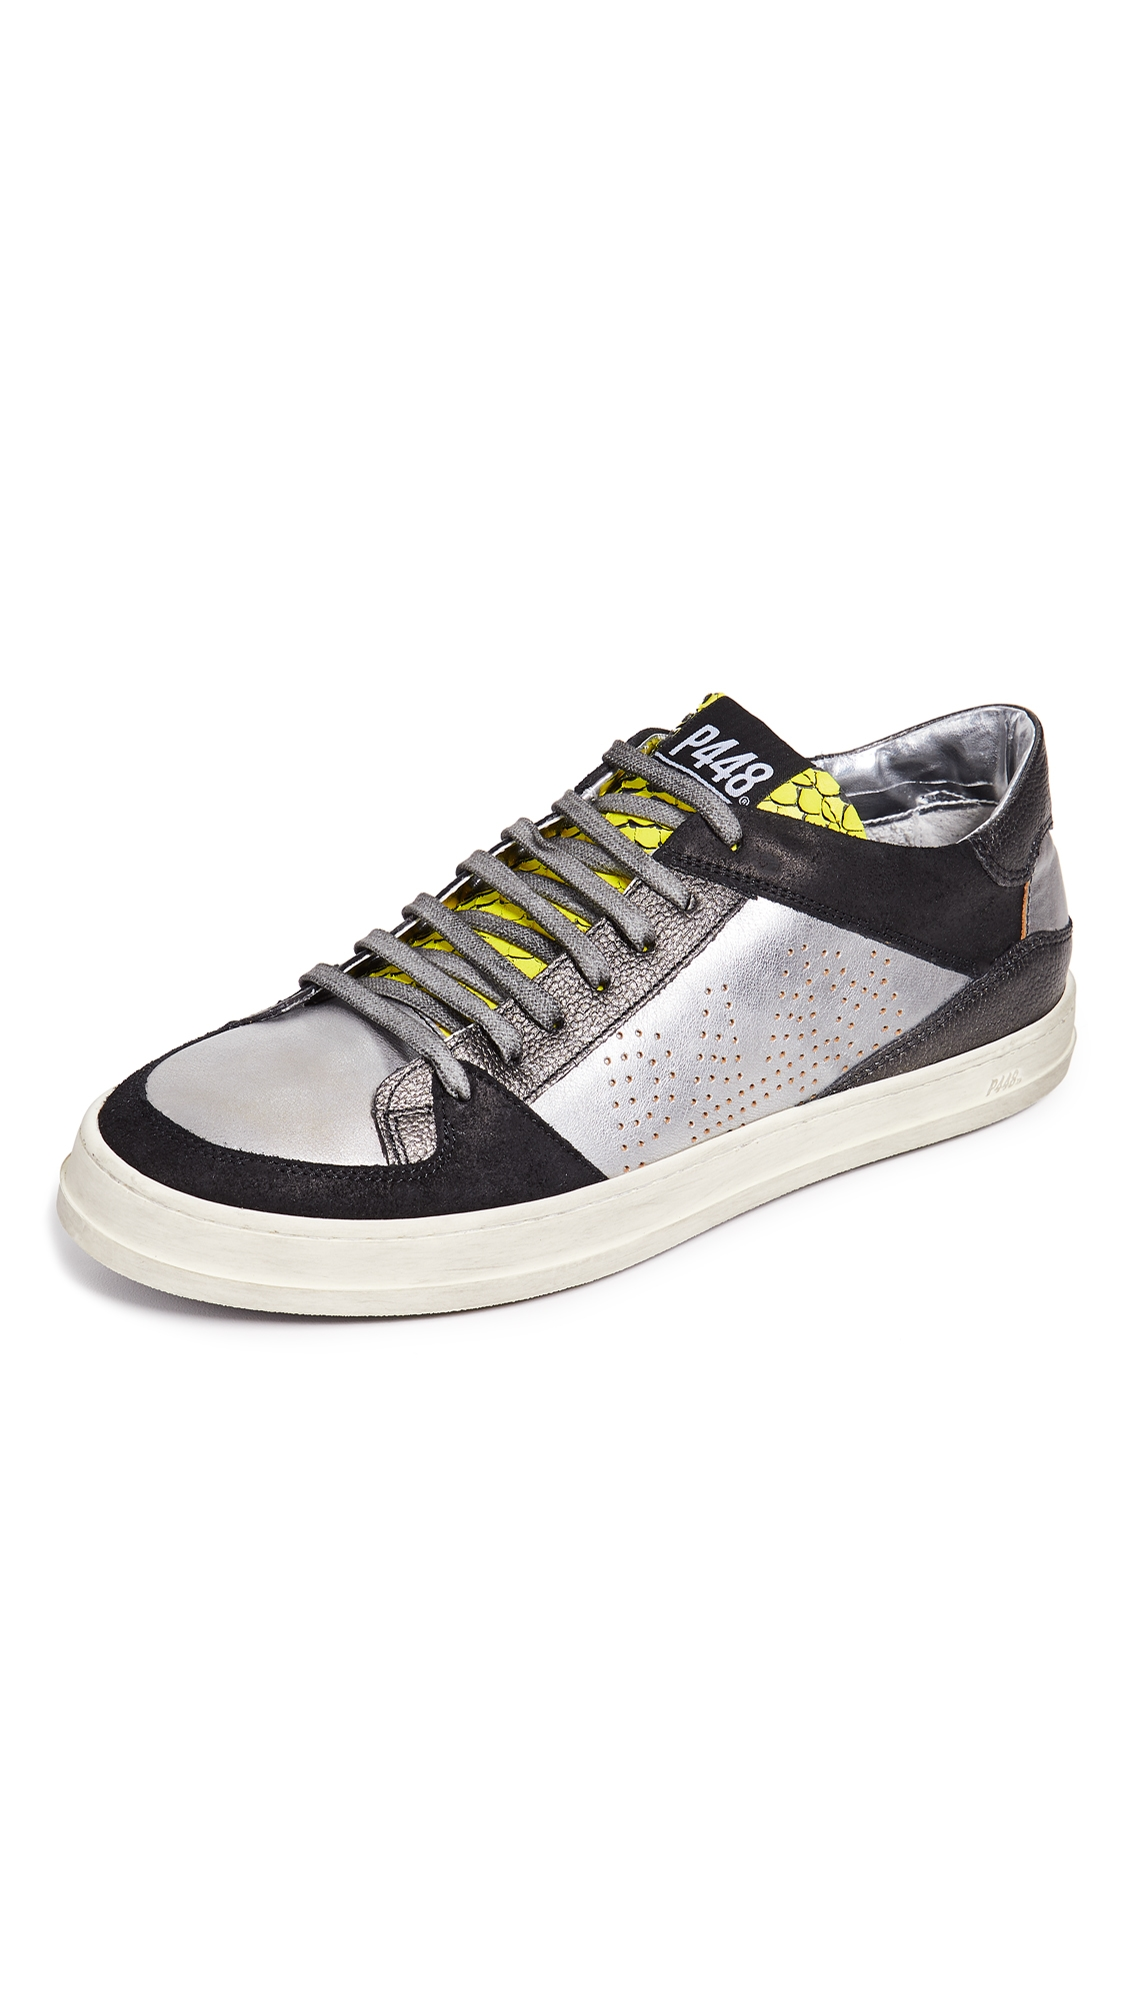 P448 LOW TOP SNEAKERS WITH METALLIC ACCENTS